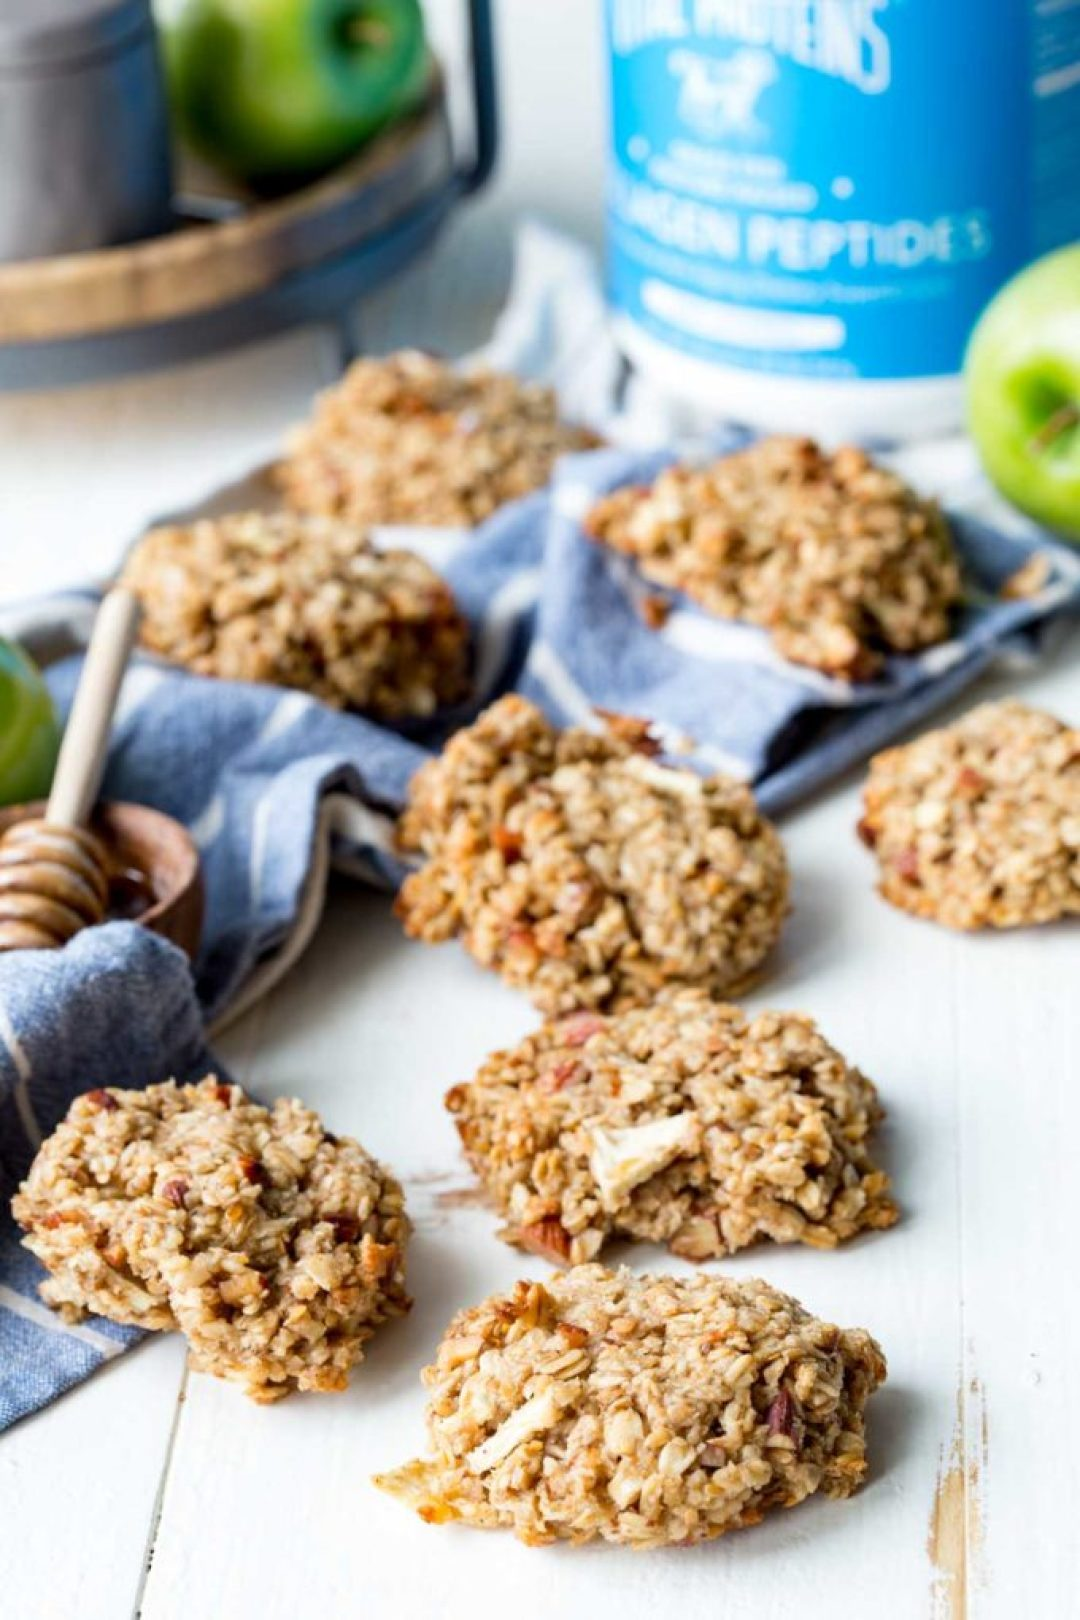 Apple Pie Breakfast Cookies are a healthy way to start your day.